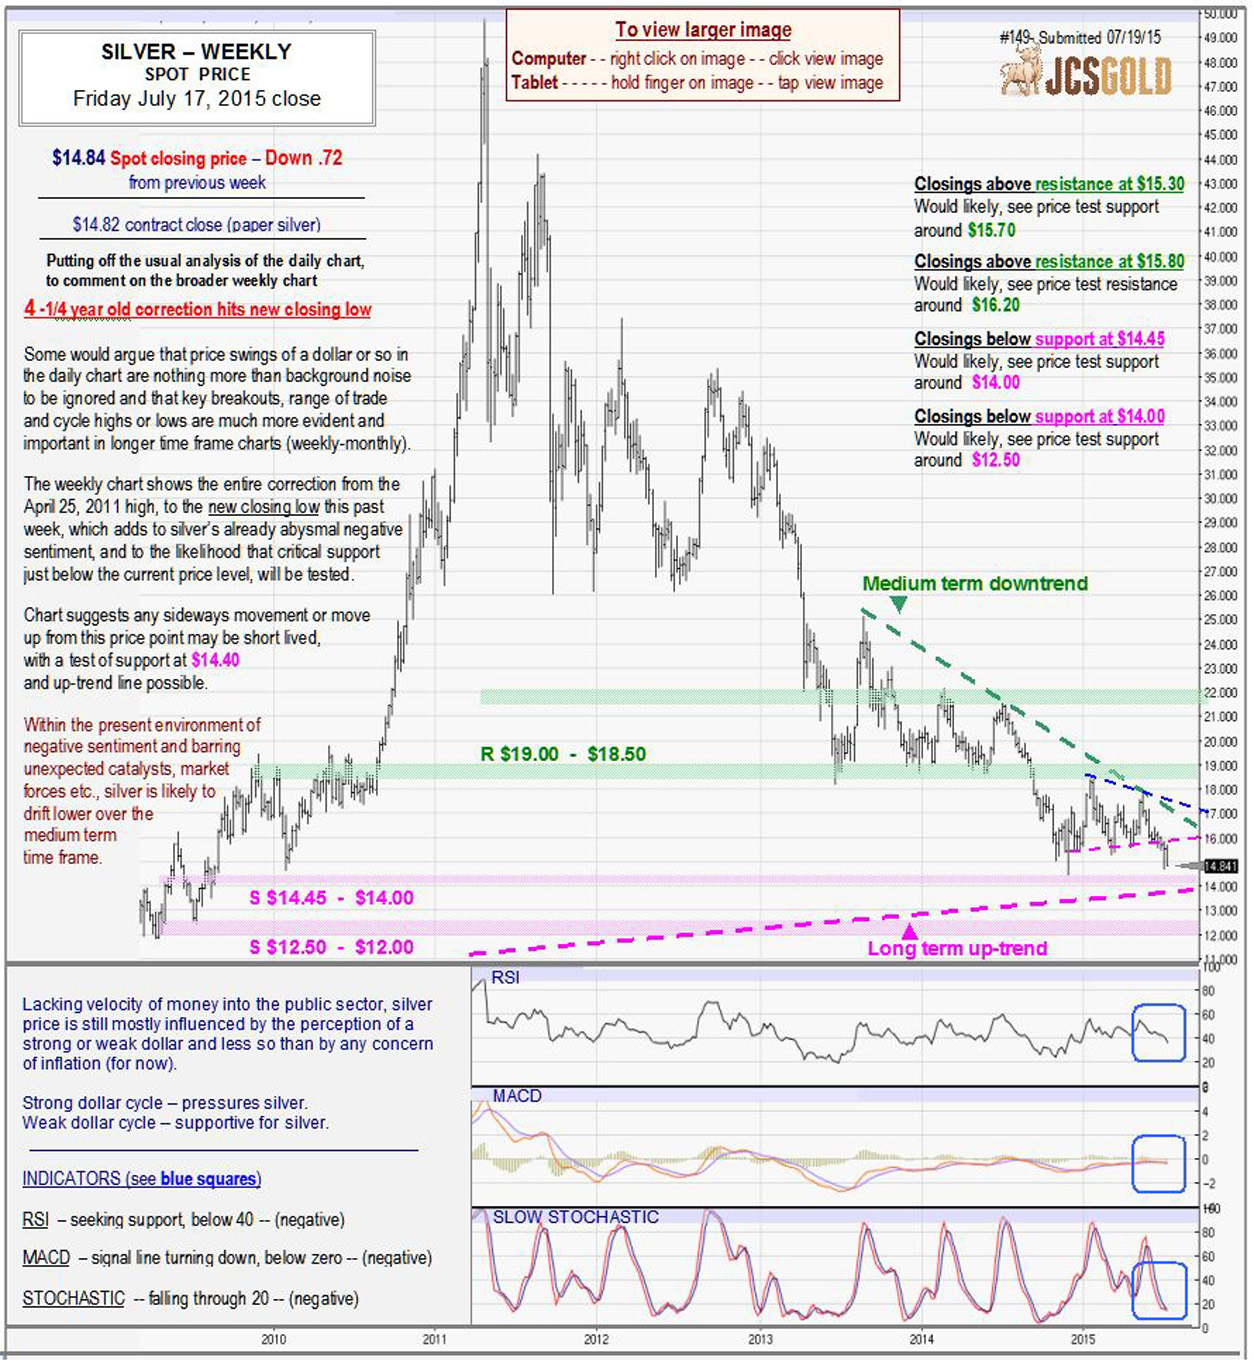 July 17, 2015 chart & commentary